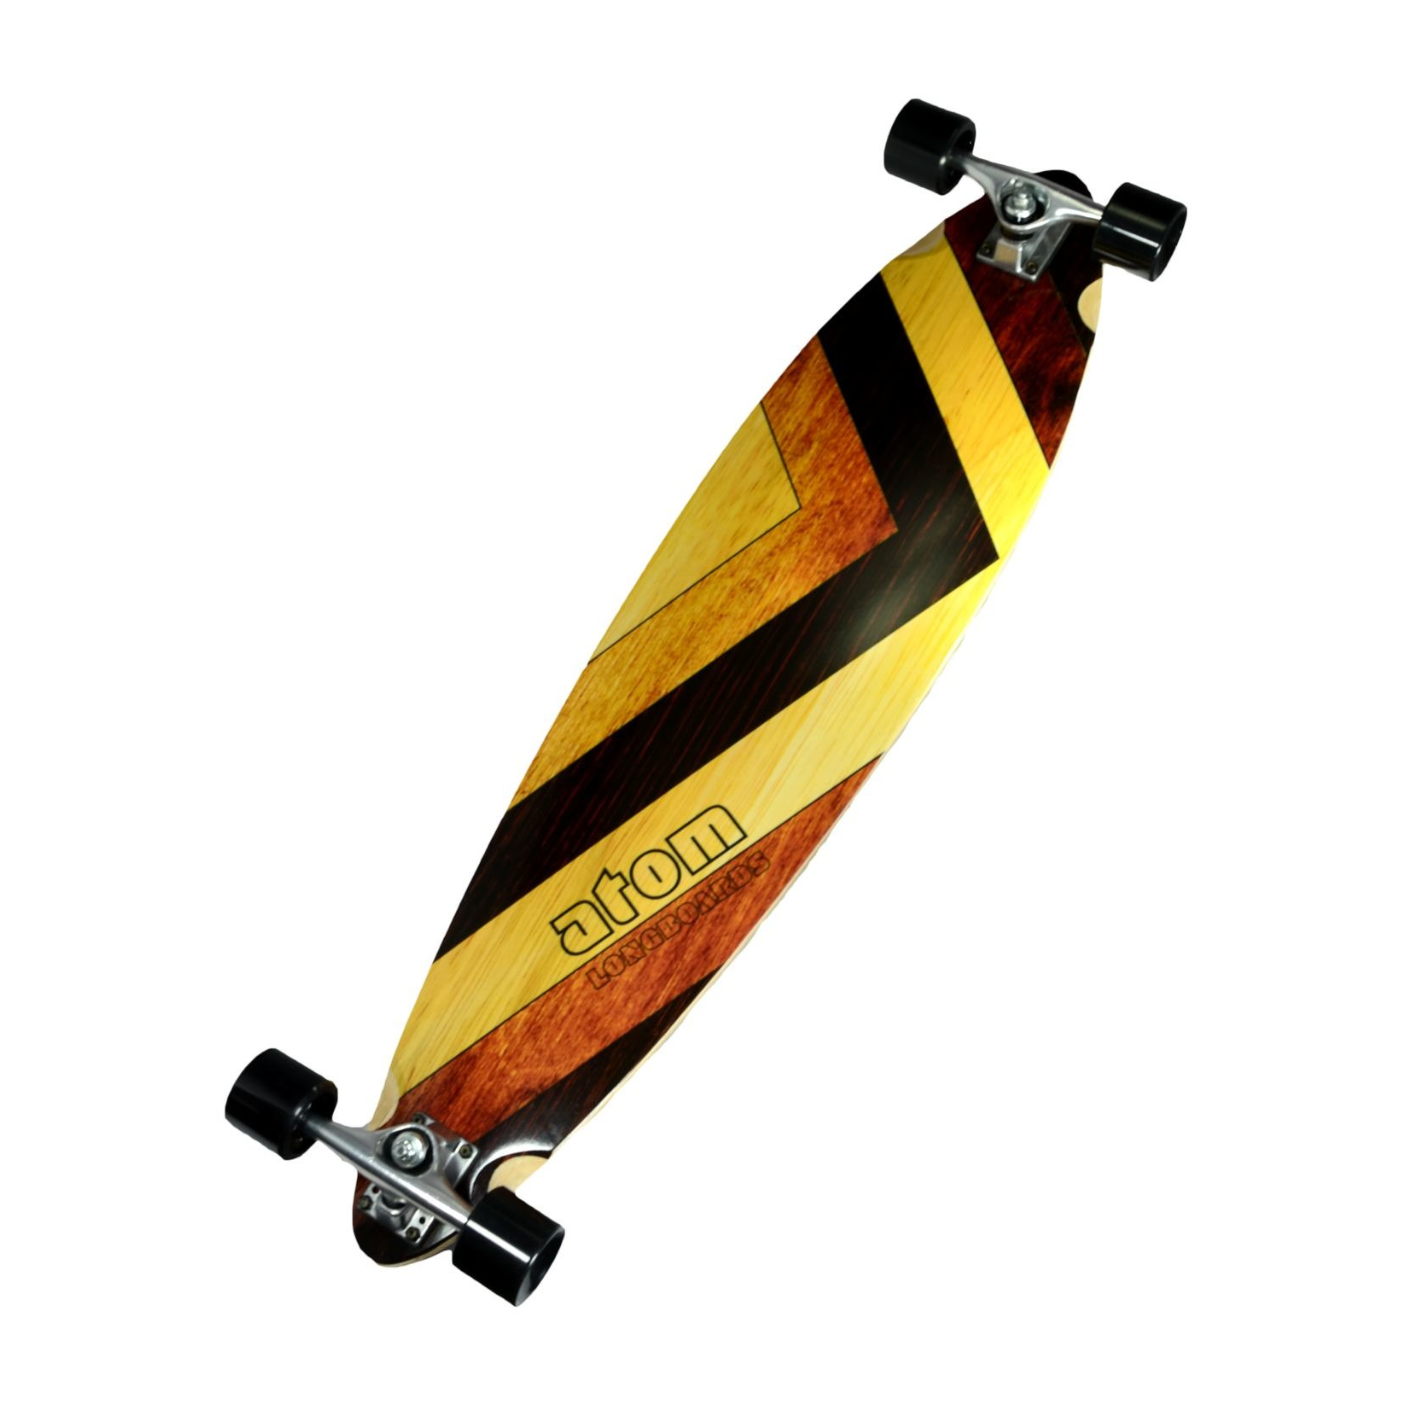 Image of Atom Pintail Longboard - 39 Inch (Woody)